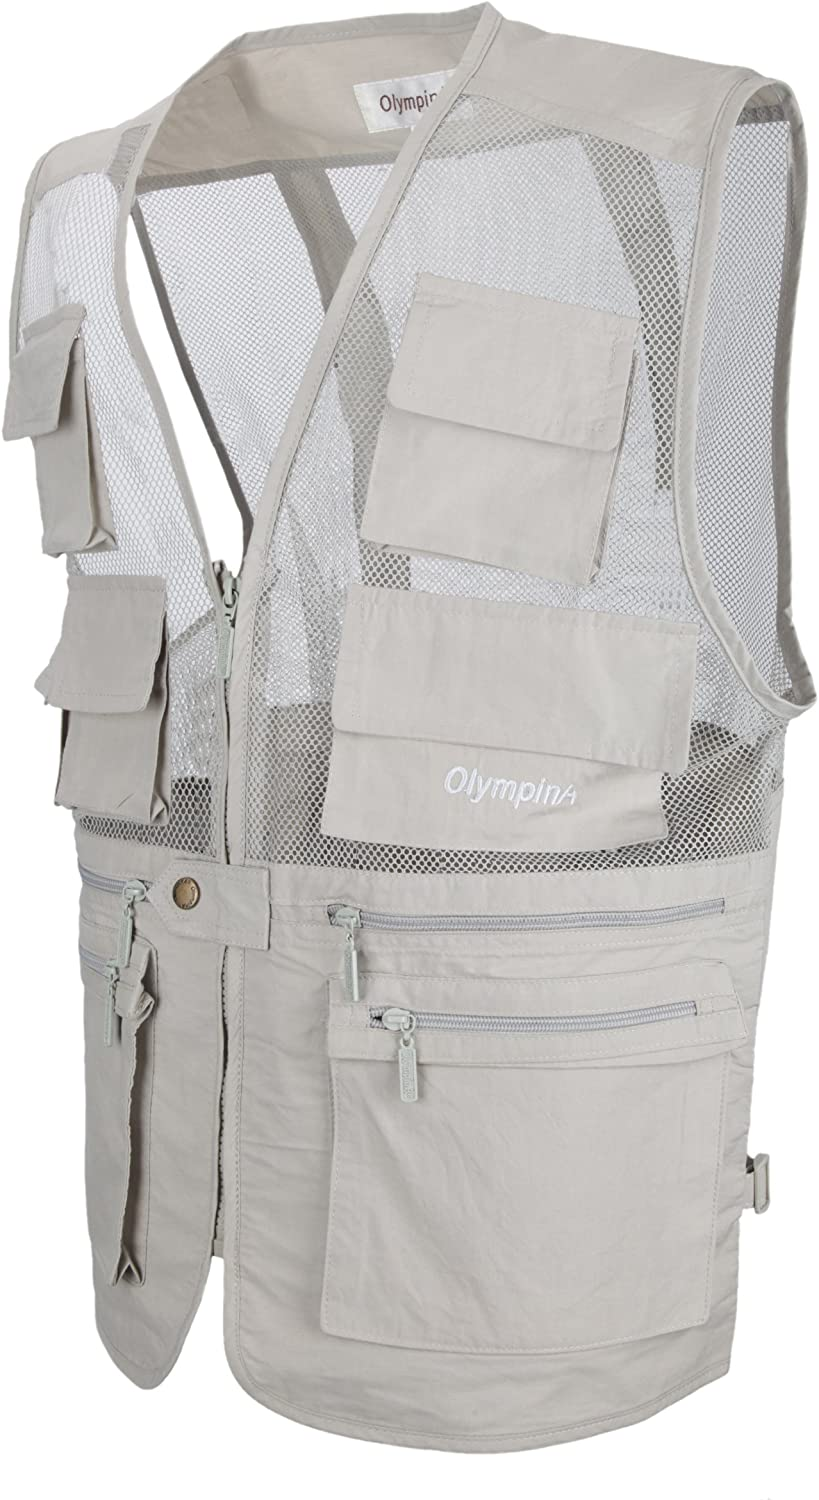 LUSI MADAM Mens Mesh Outdoor Fly Fishing Vest with Pockets